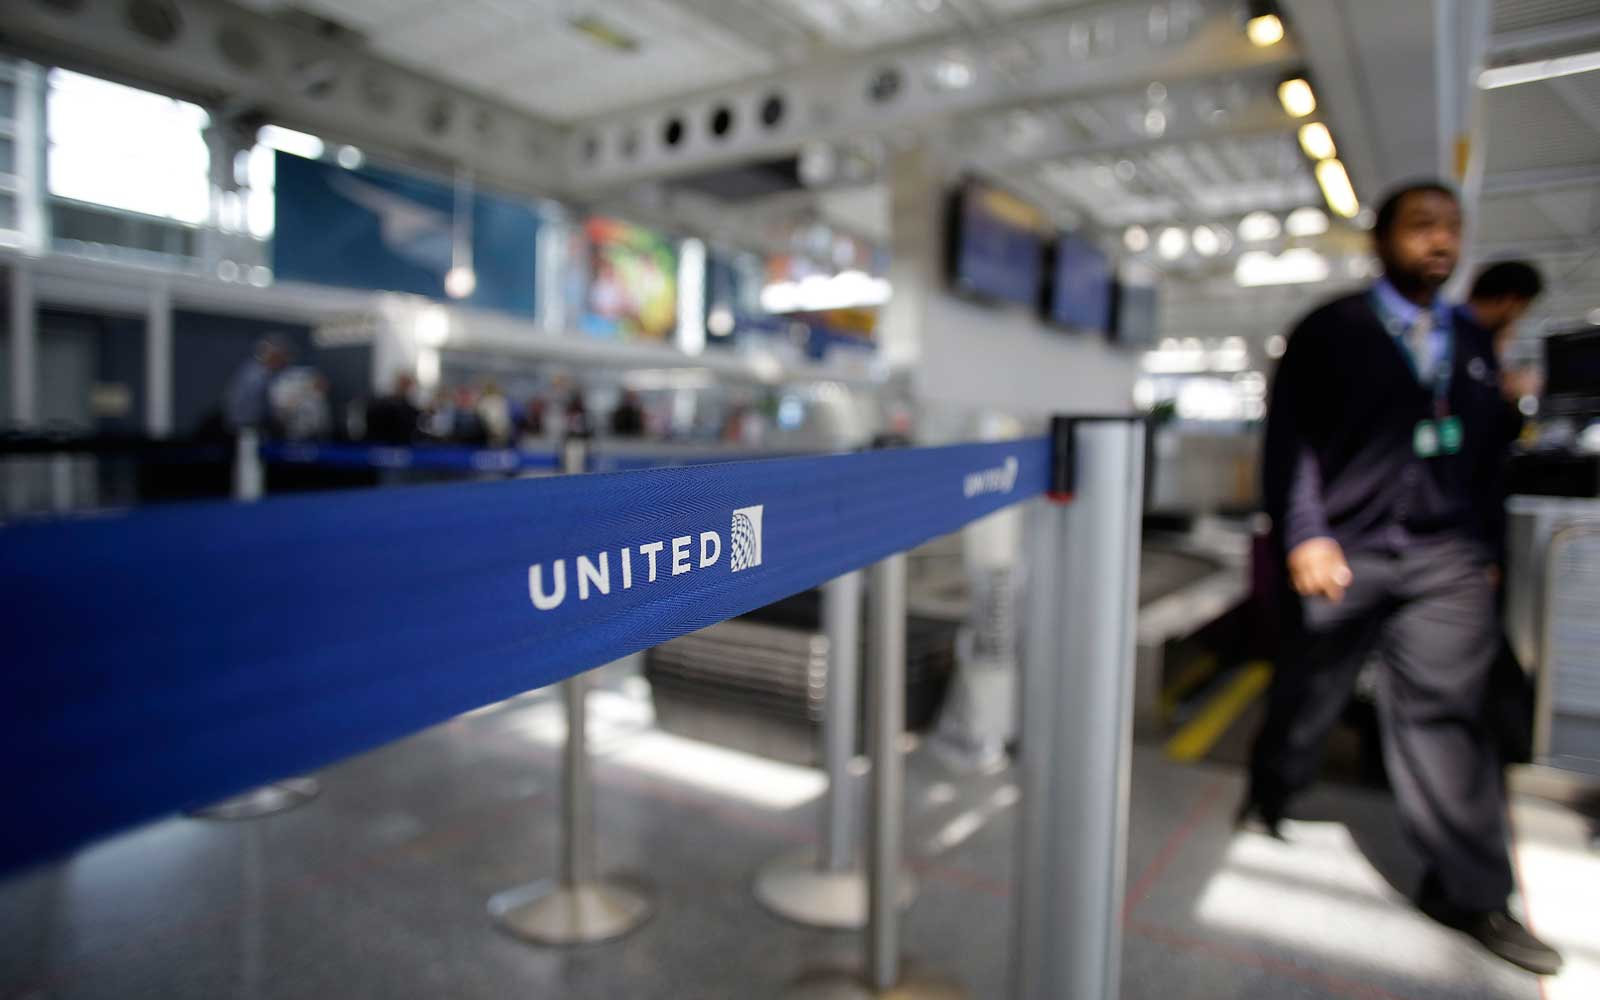 United Dao Incident Officer Suing